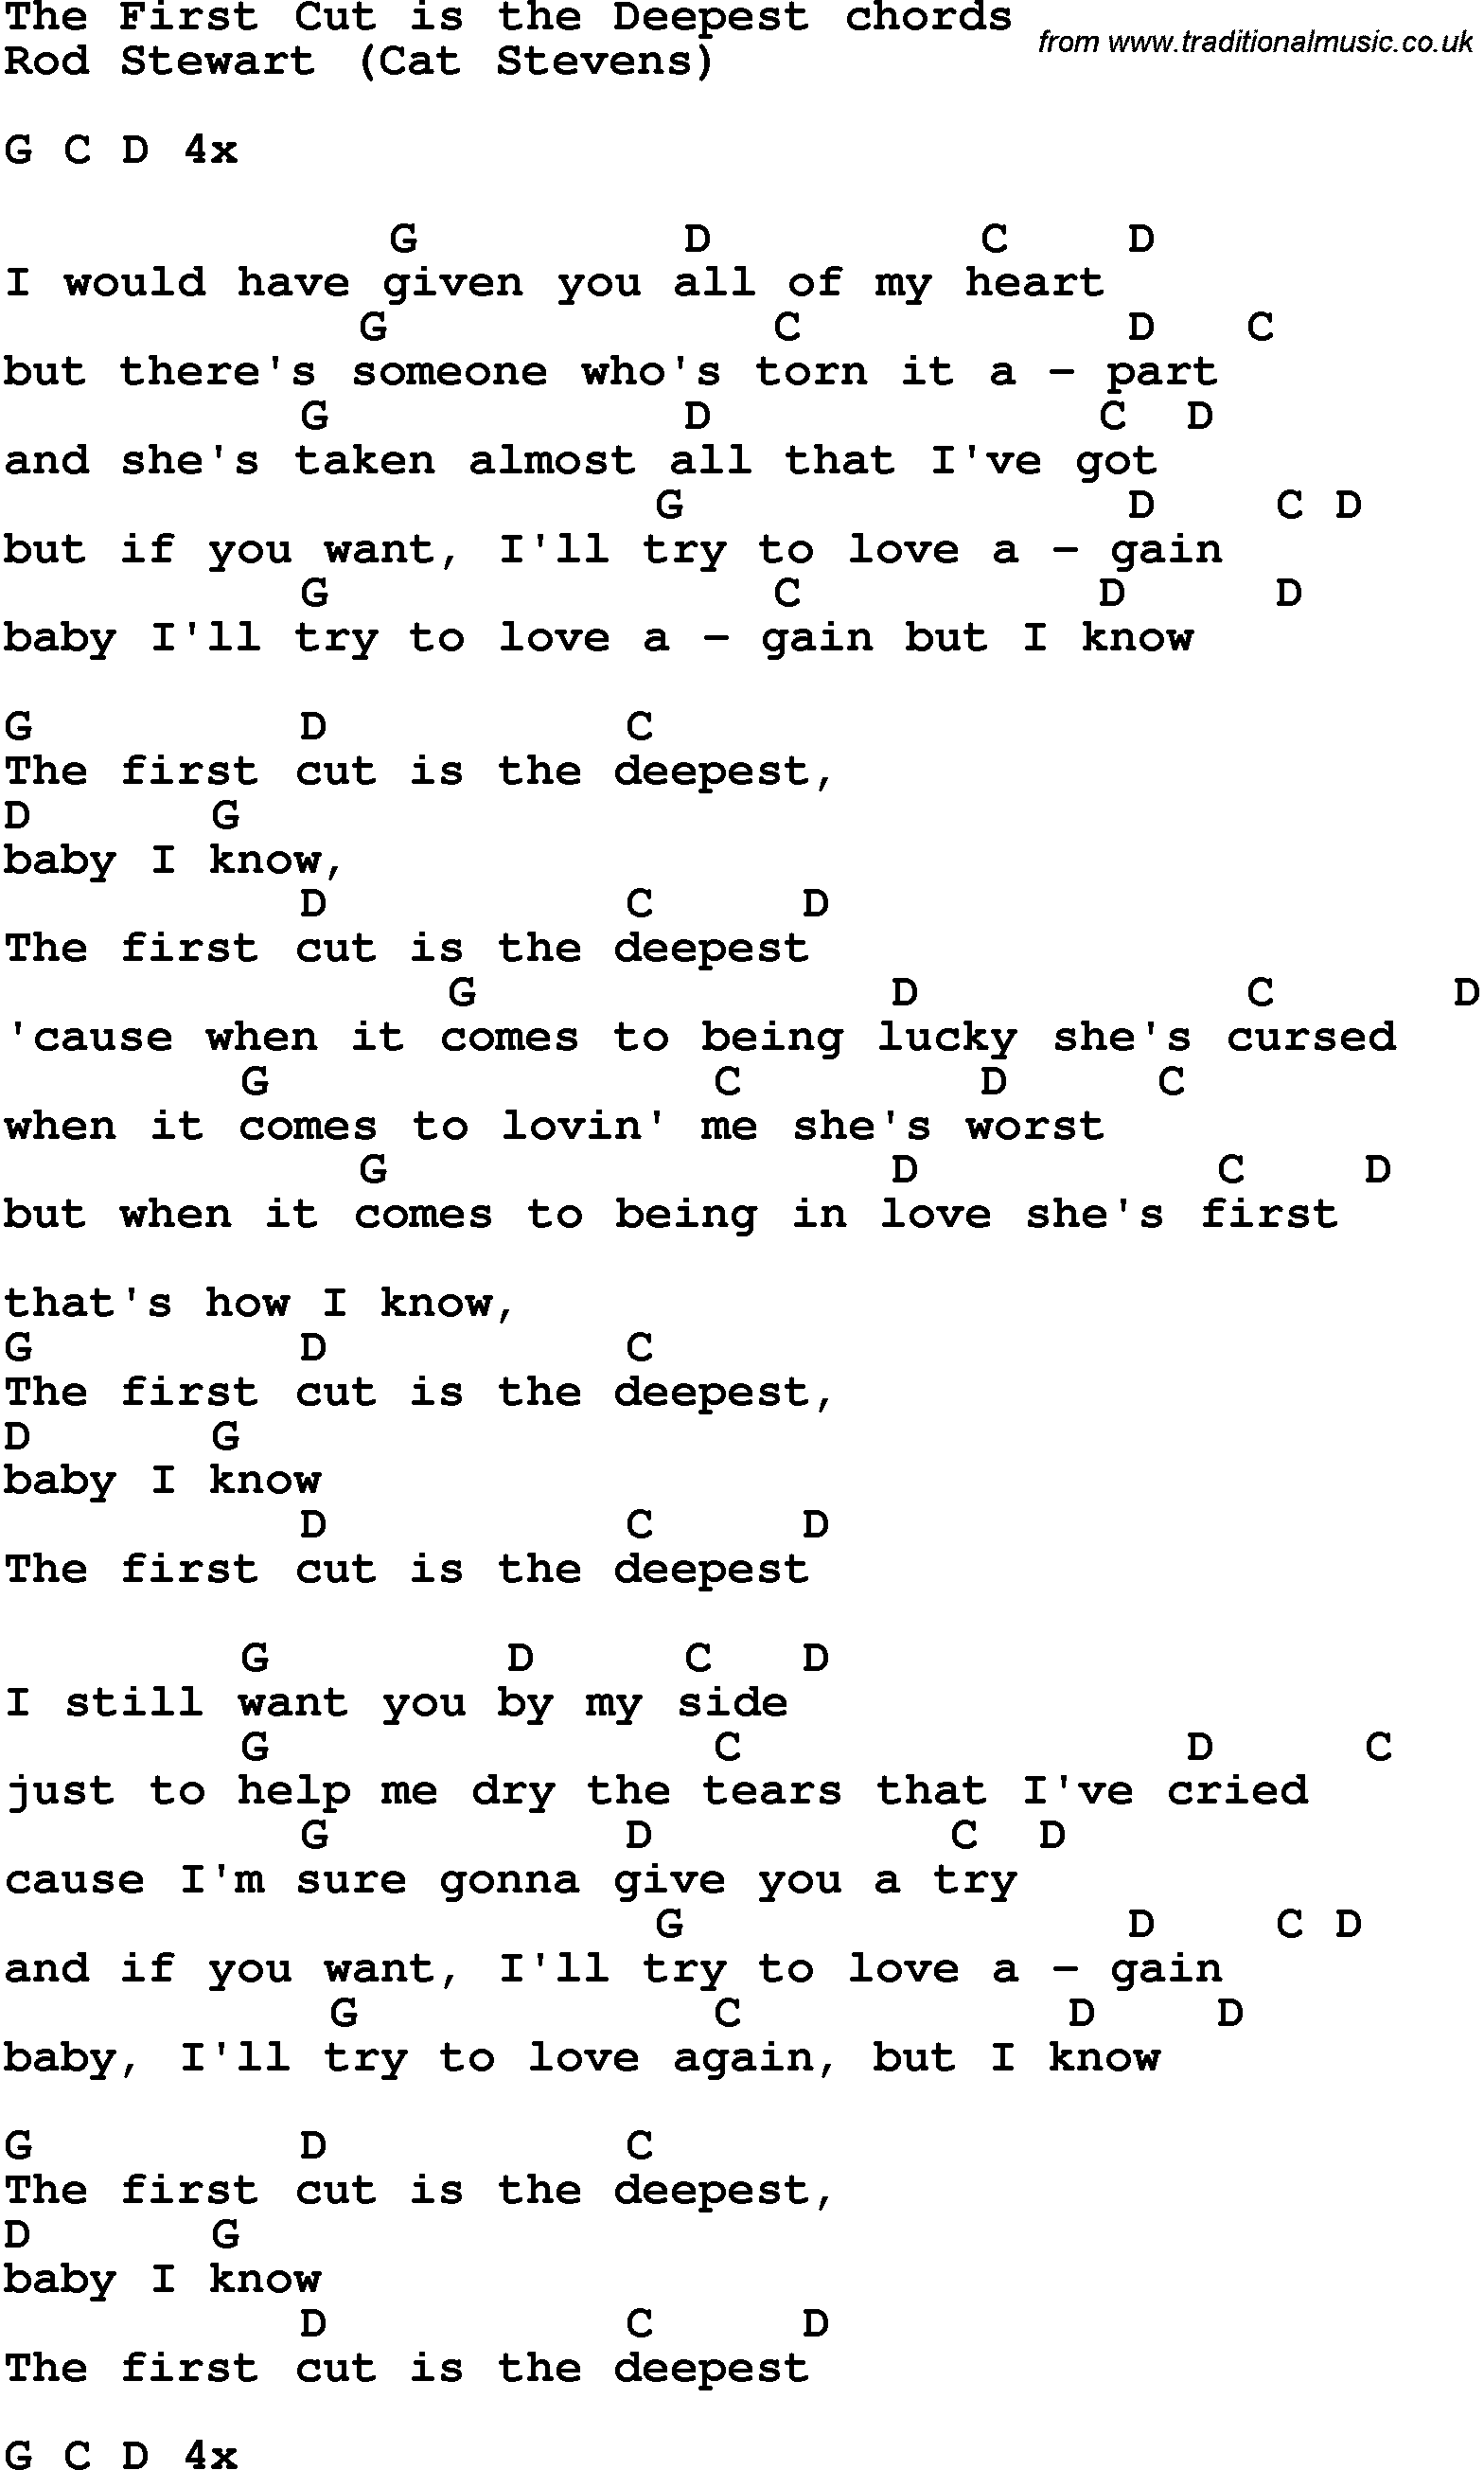 Song lyrics with guitar chords for the first cut is the deepest song lyrics with guitar chords for the first cut is the deepest rod stewart hexwebz Images